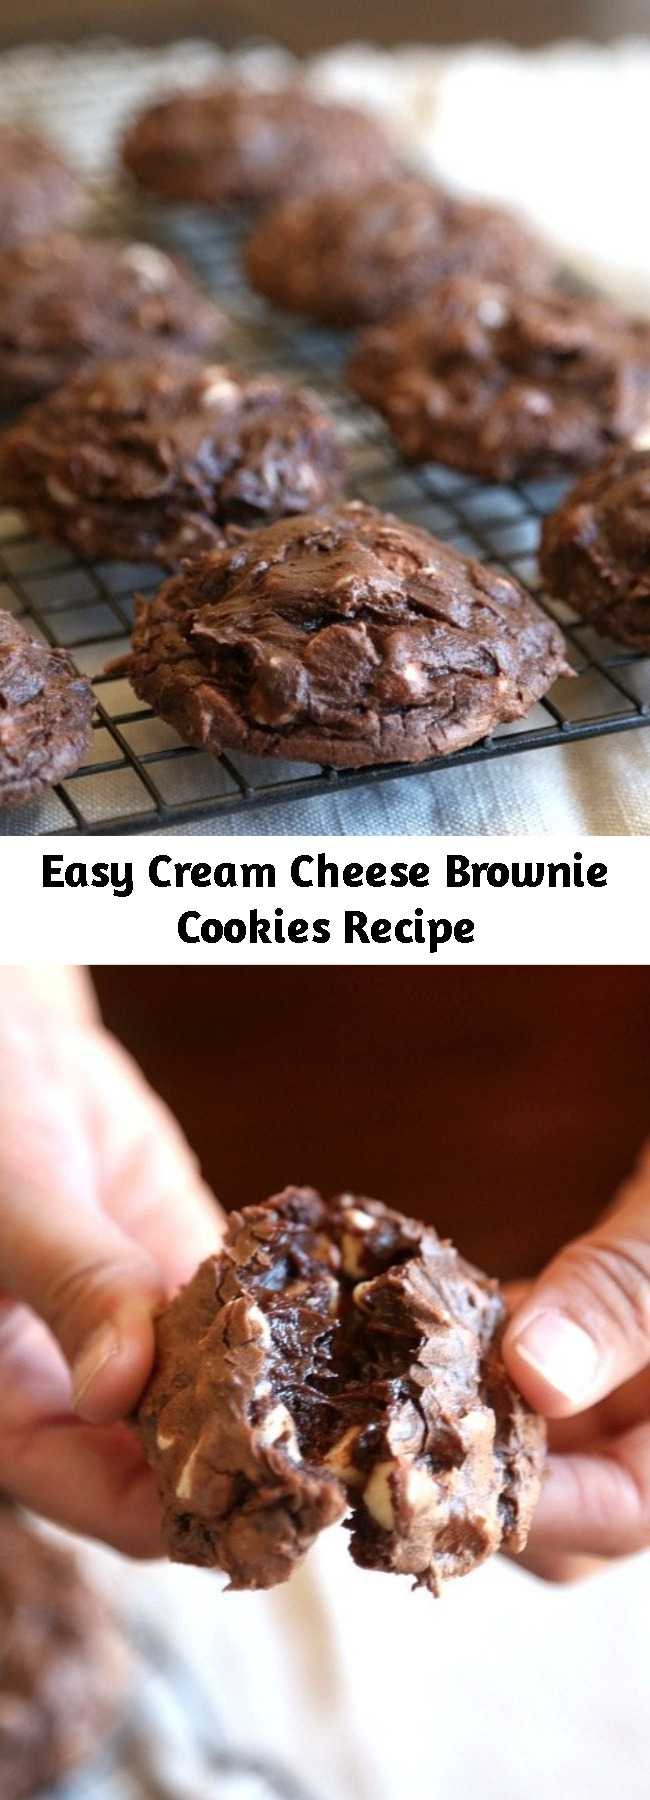 Easy Cream Cheese Brownie Cookies Recipe - These Cream Cheese Brownie Cookies are ridiculously gooey and fudgy! They're also super simple made with a brownie mix! This cream cheese brookie recipe is the chocolate dessert of your wildest dreams!